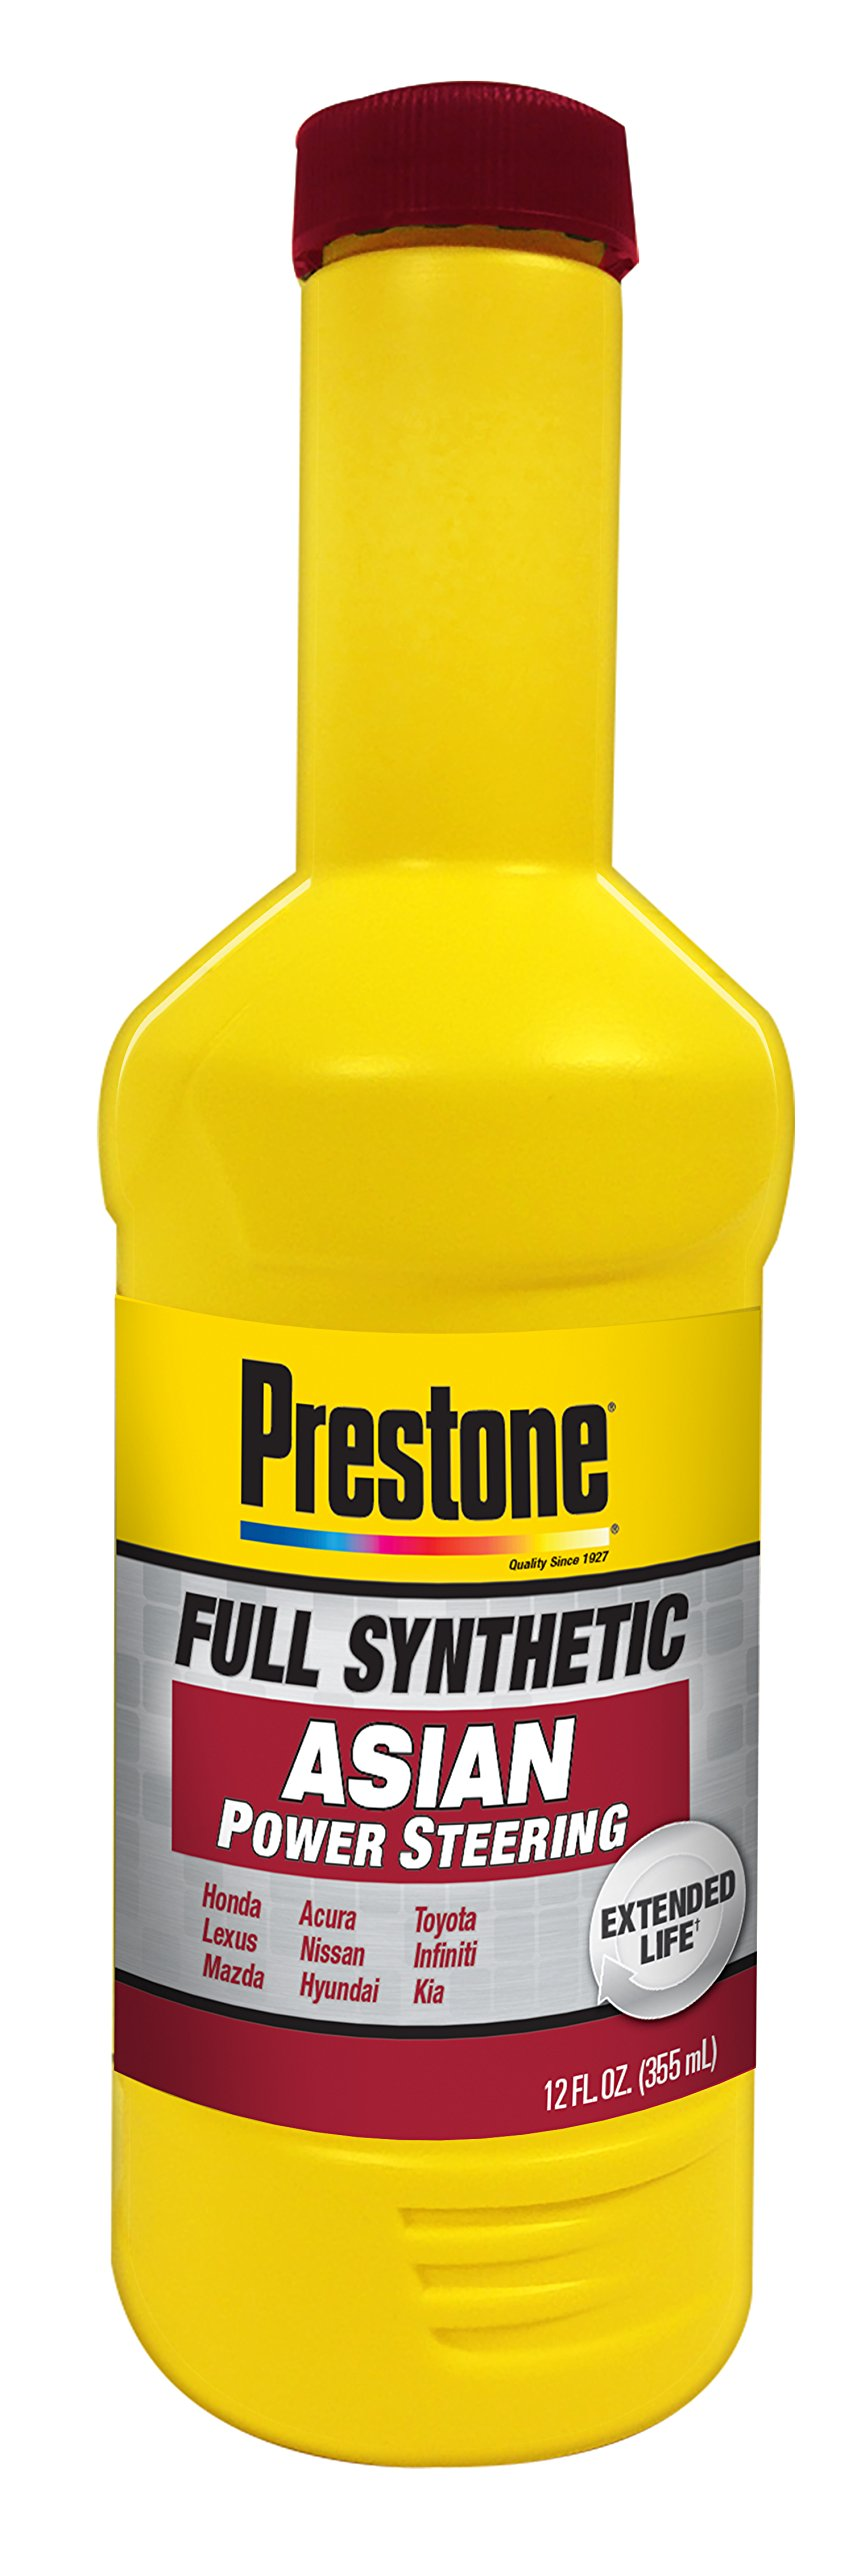 Prestone AS269 Power Steering Fluid for Asian Vehicles - 12 oz. by Prestone